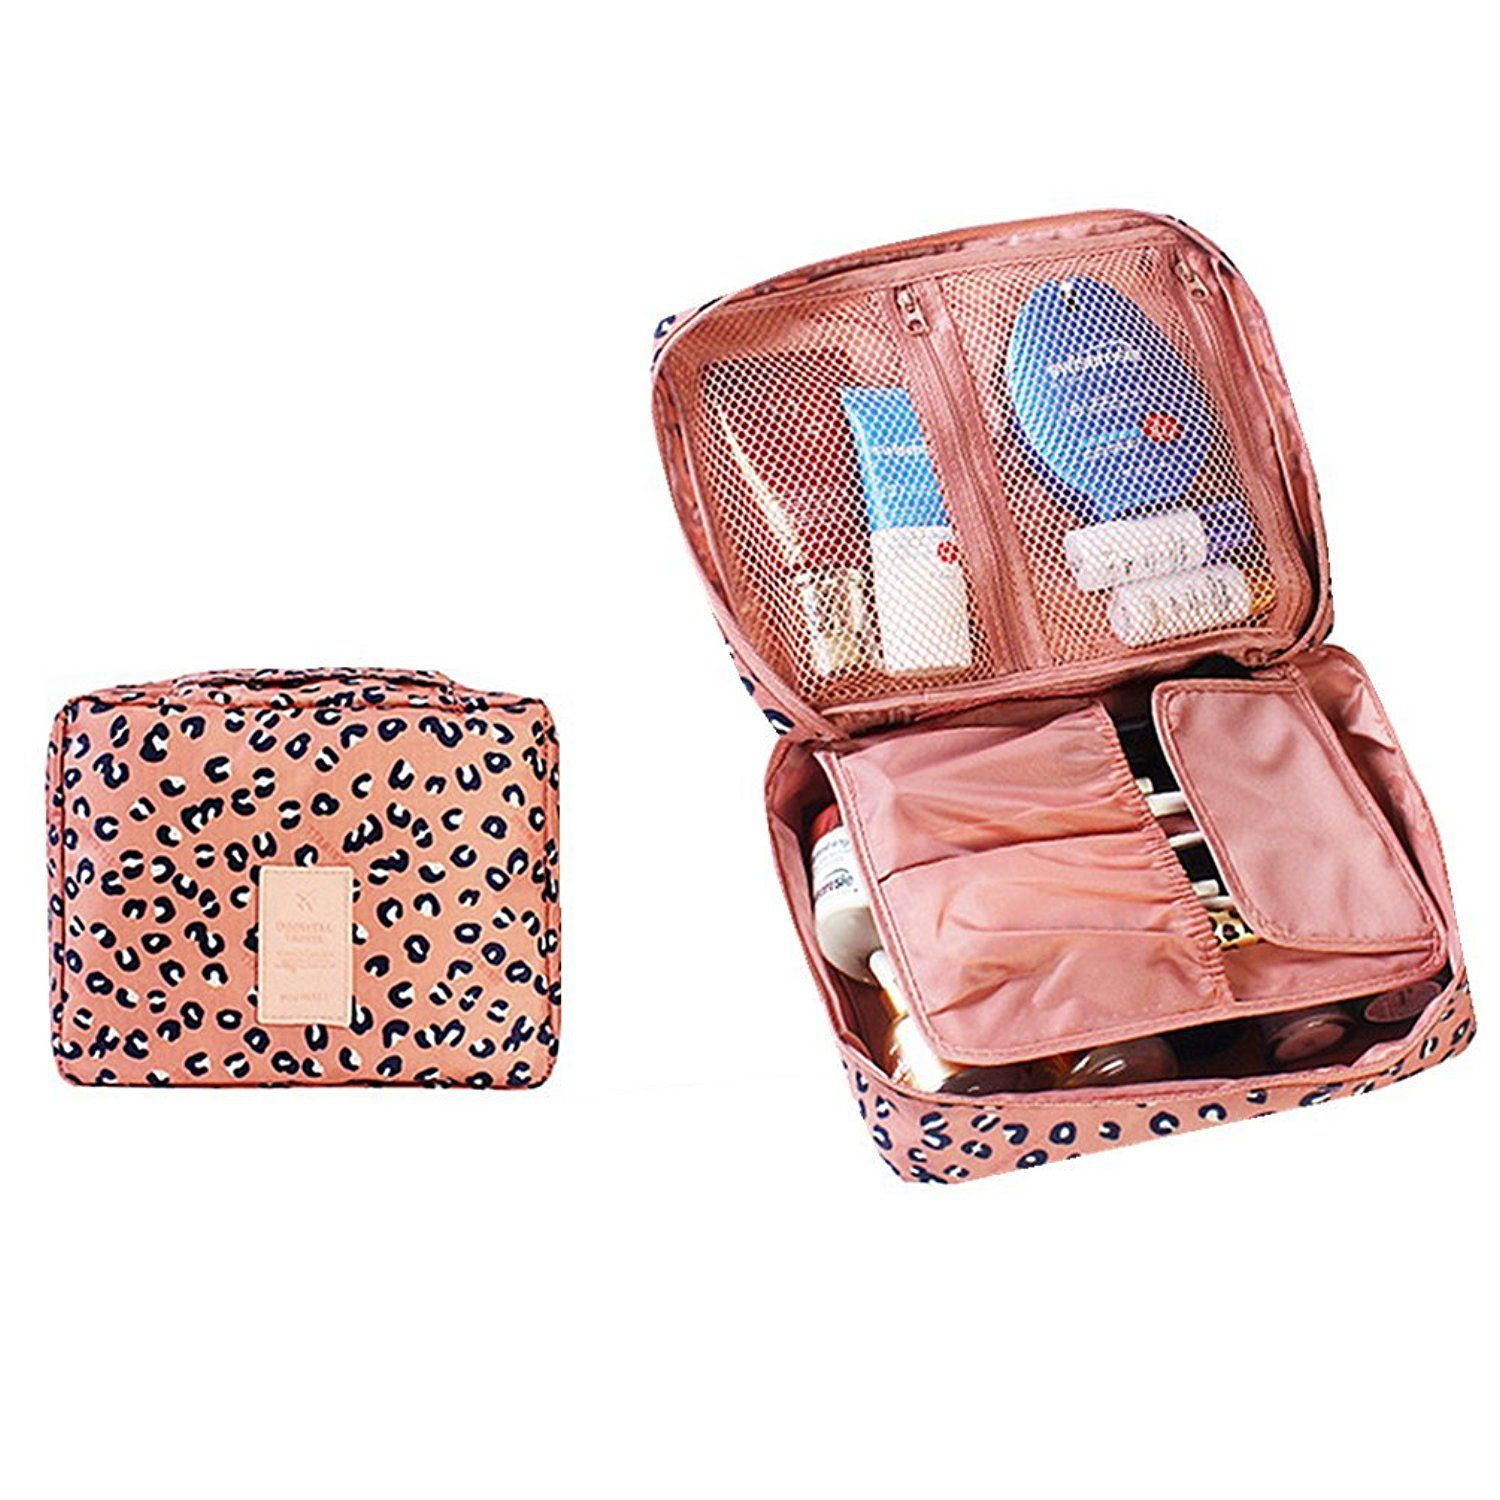 dfe433a321d0 Itraveller Printed Multifunction Portable Travel Toiletry Bag ...